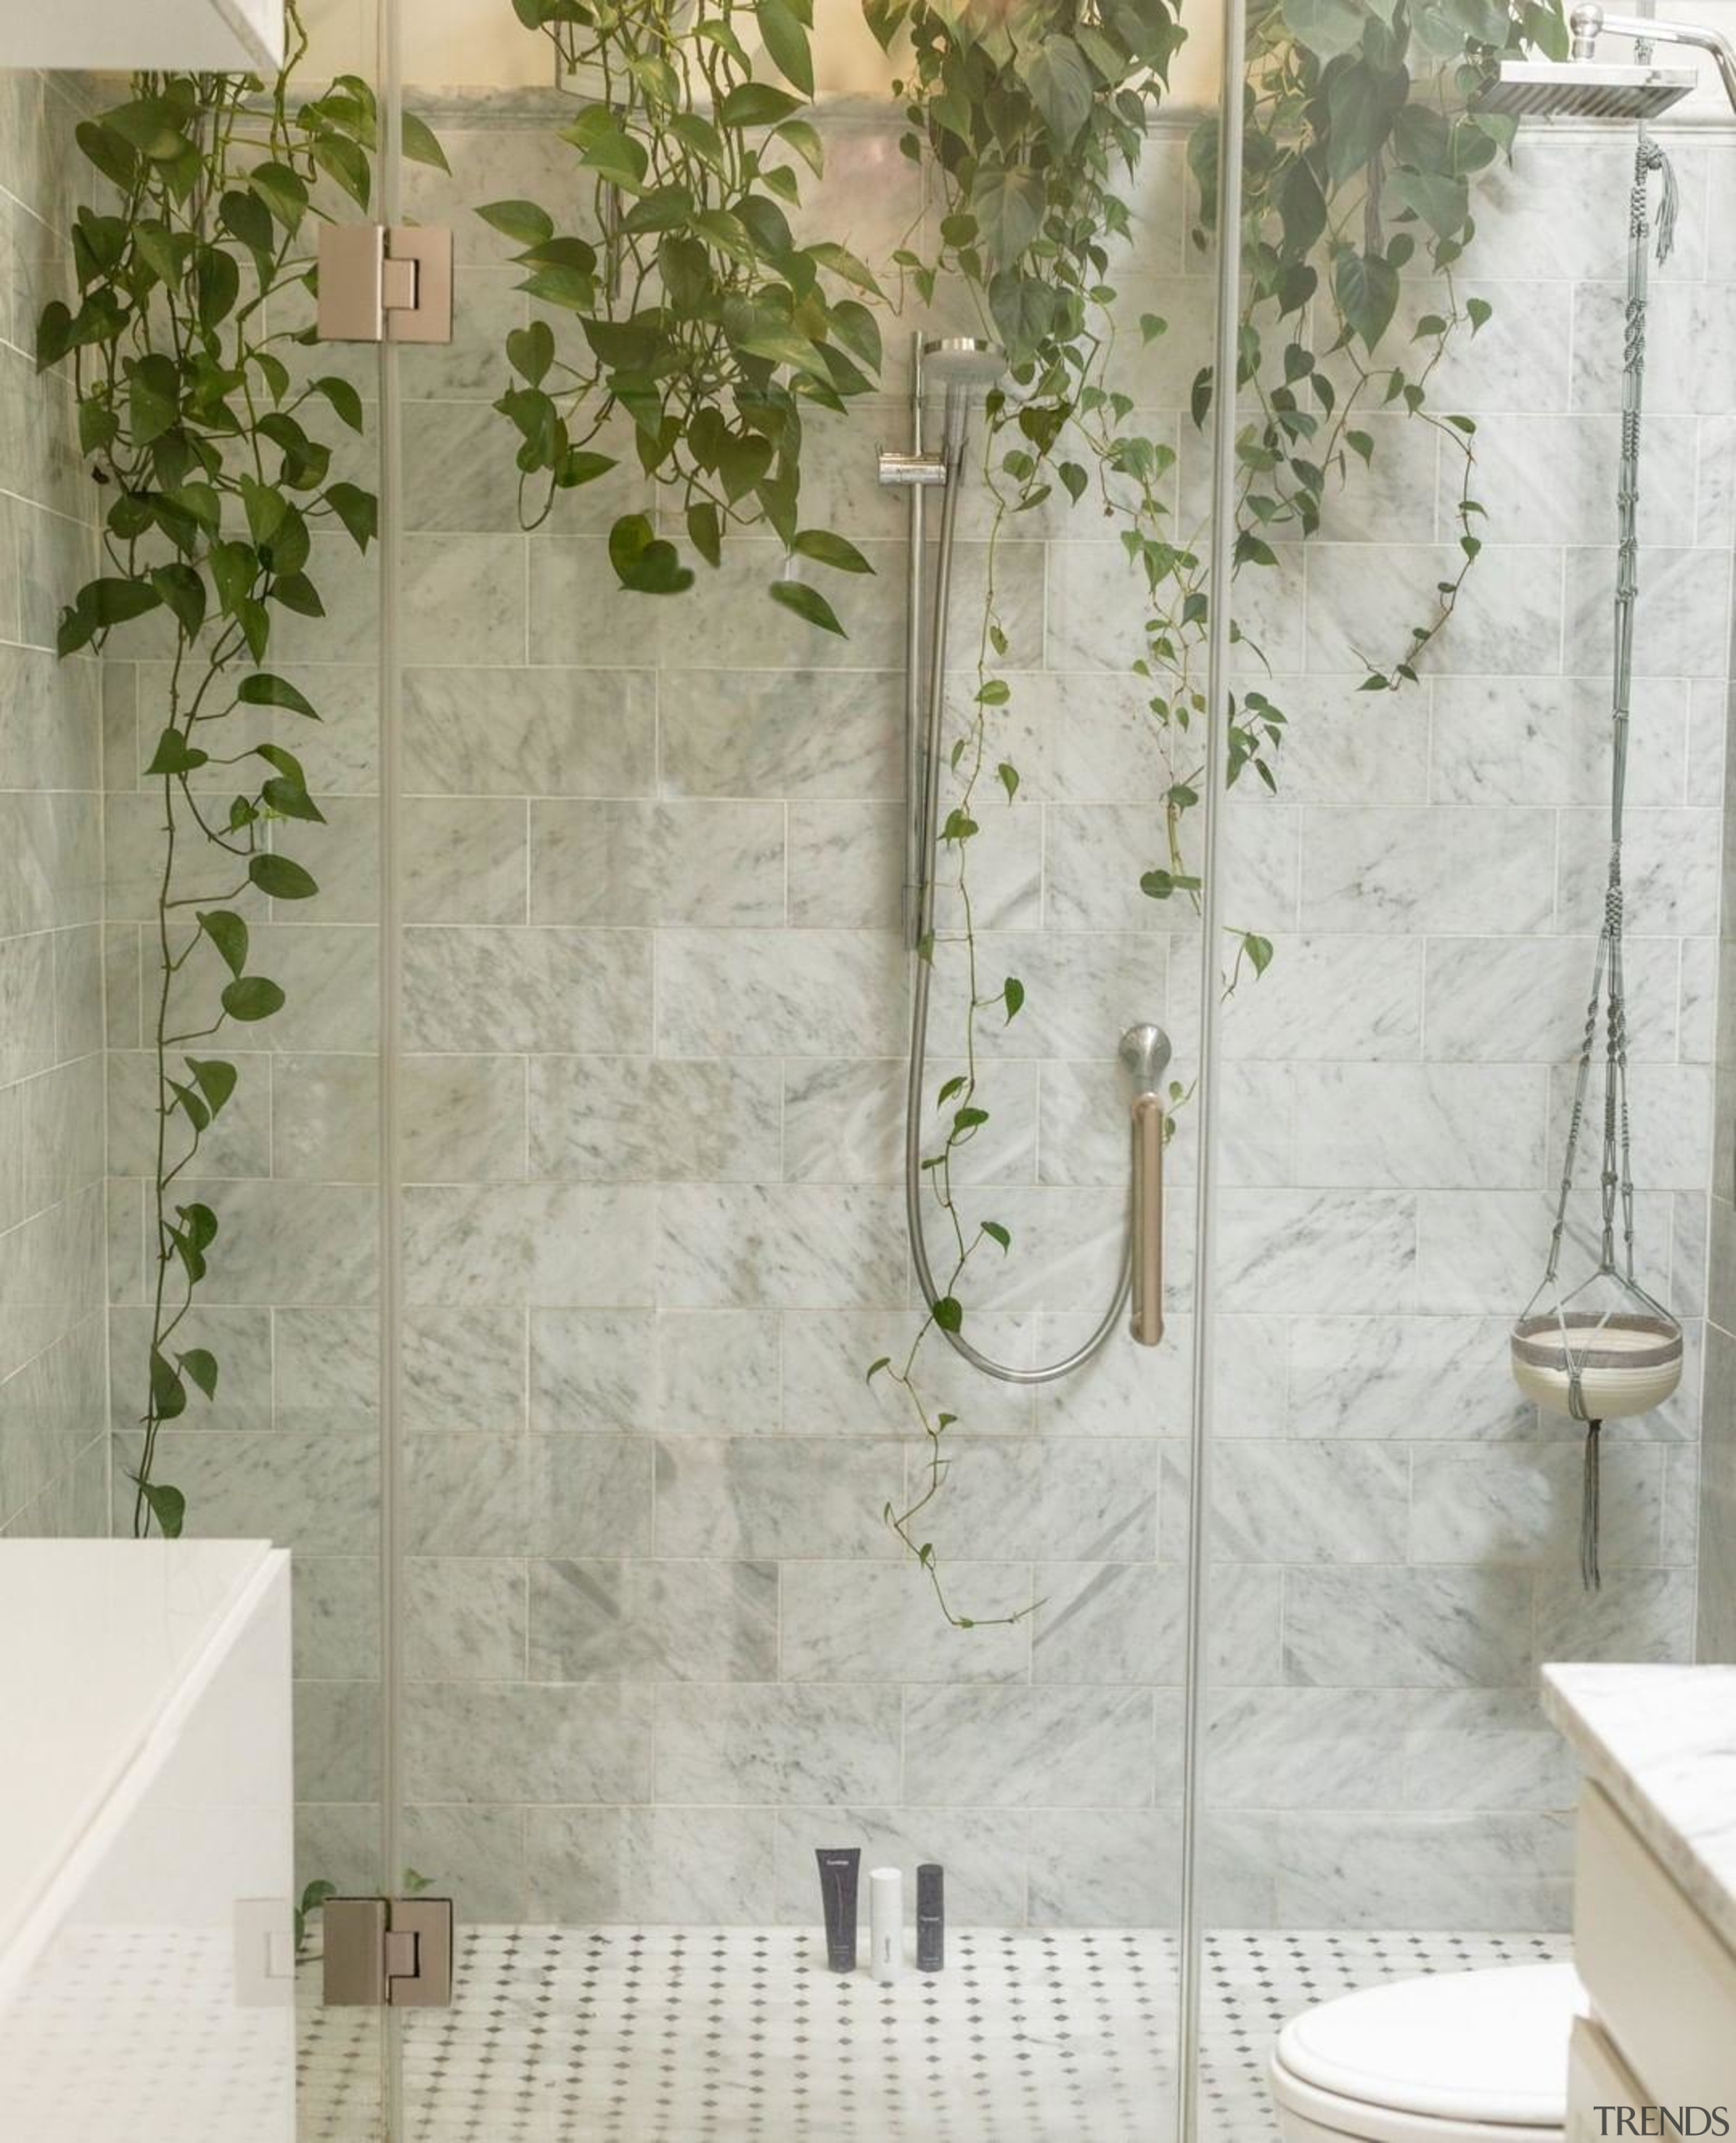 A moisture-loving trailing plant, ivy makes for an